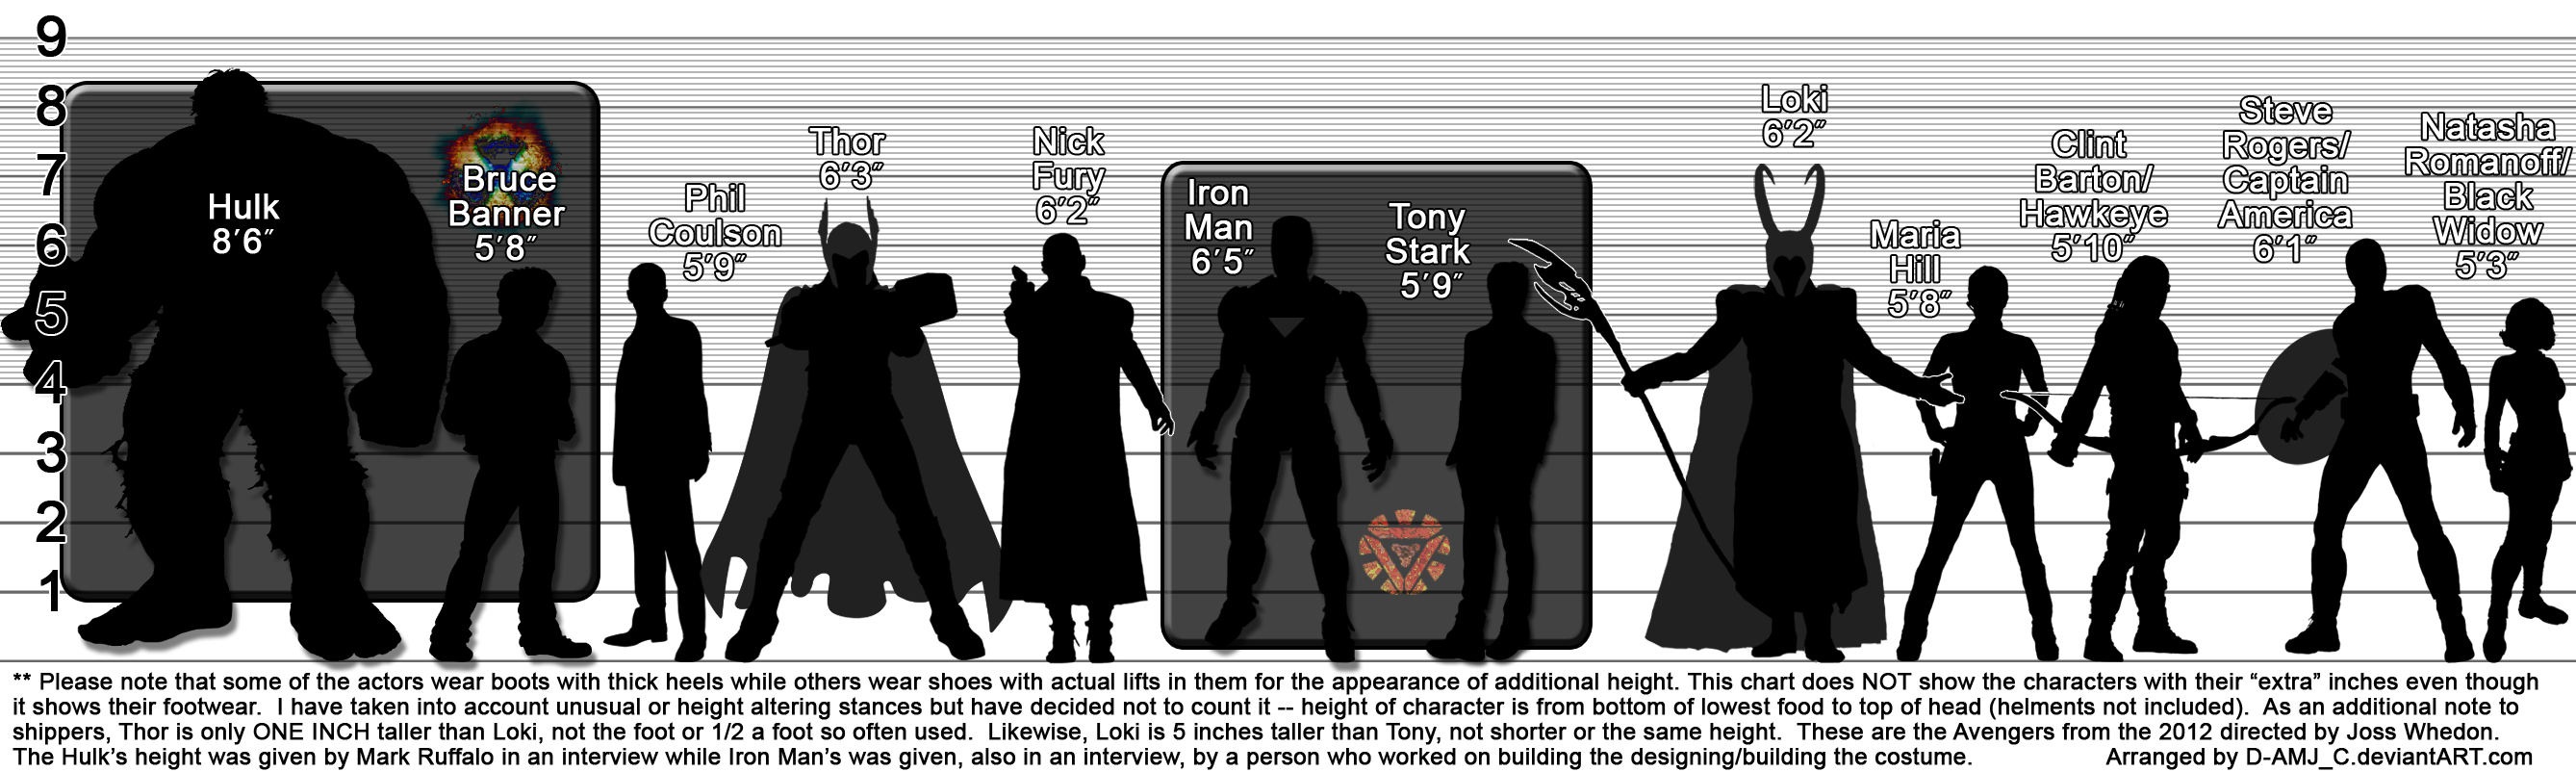 The Avengers (2012) Height Chart ~ CORRECTED by D-AMJ-C on DeviantArt